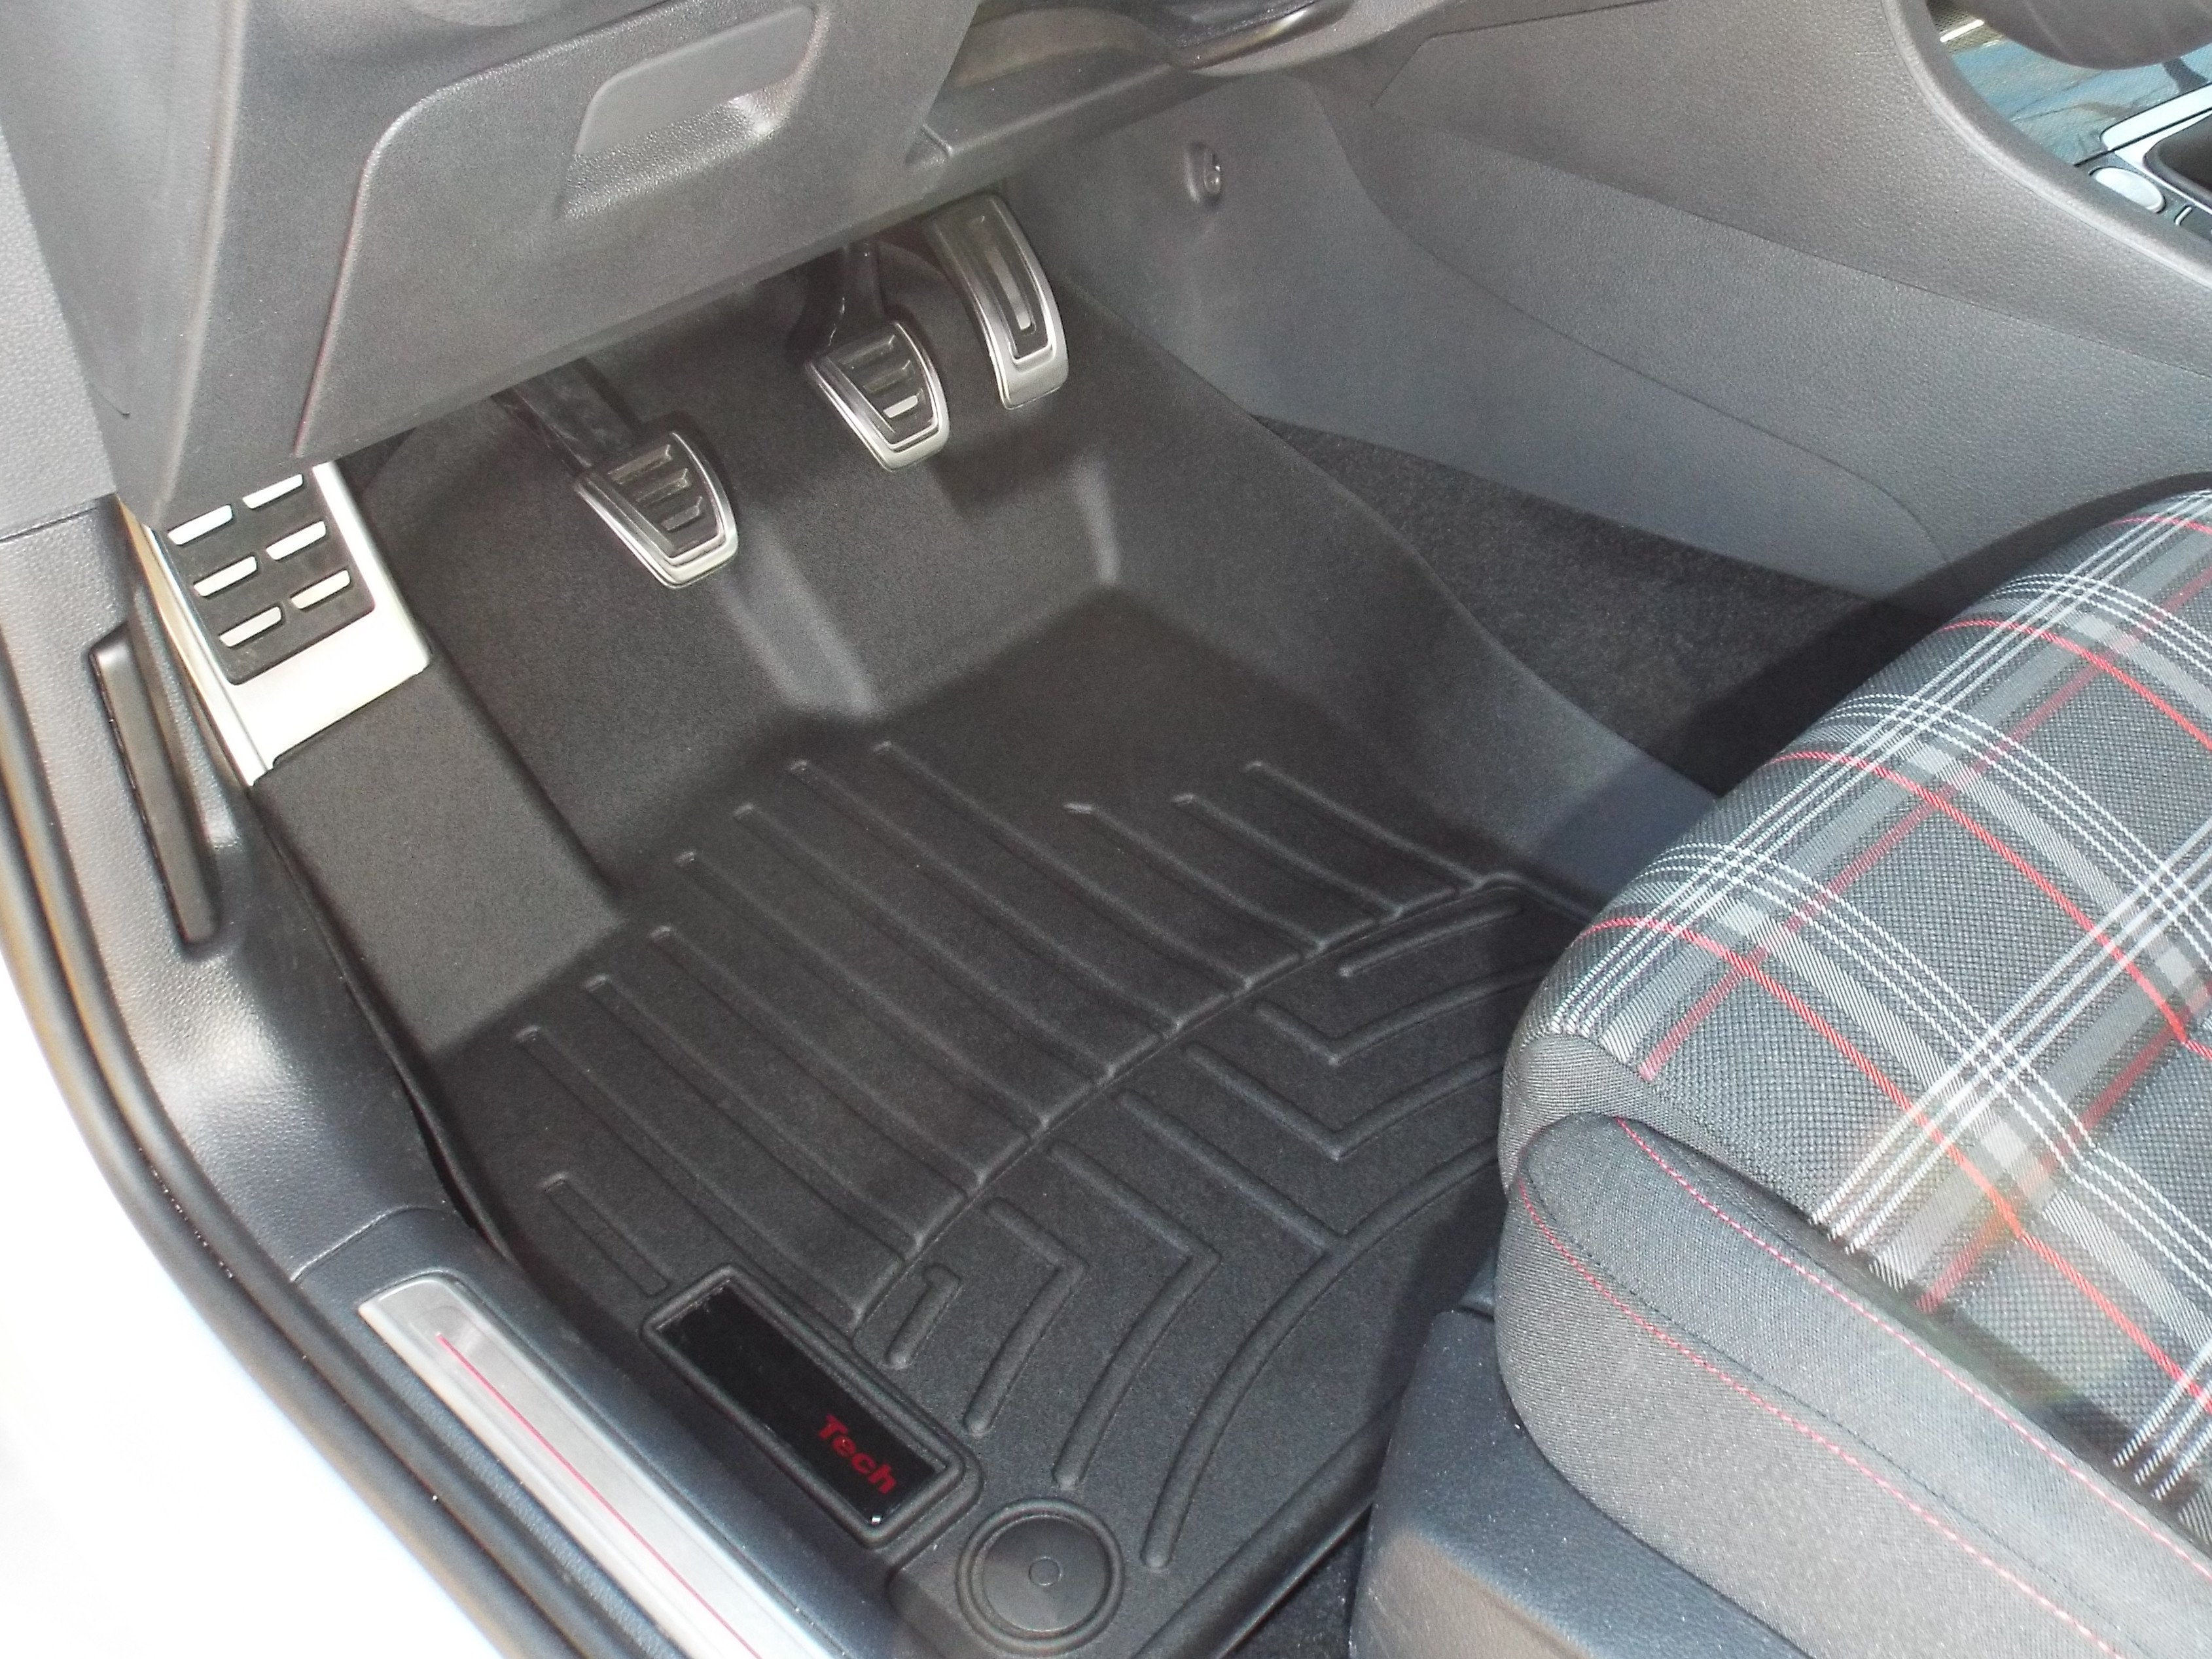 i love weathertech floor mats theyu0027re molded to fit the exact contours of the floor and protect more than standard floor mats or even the factory